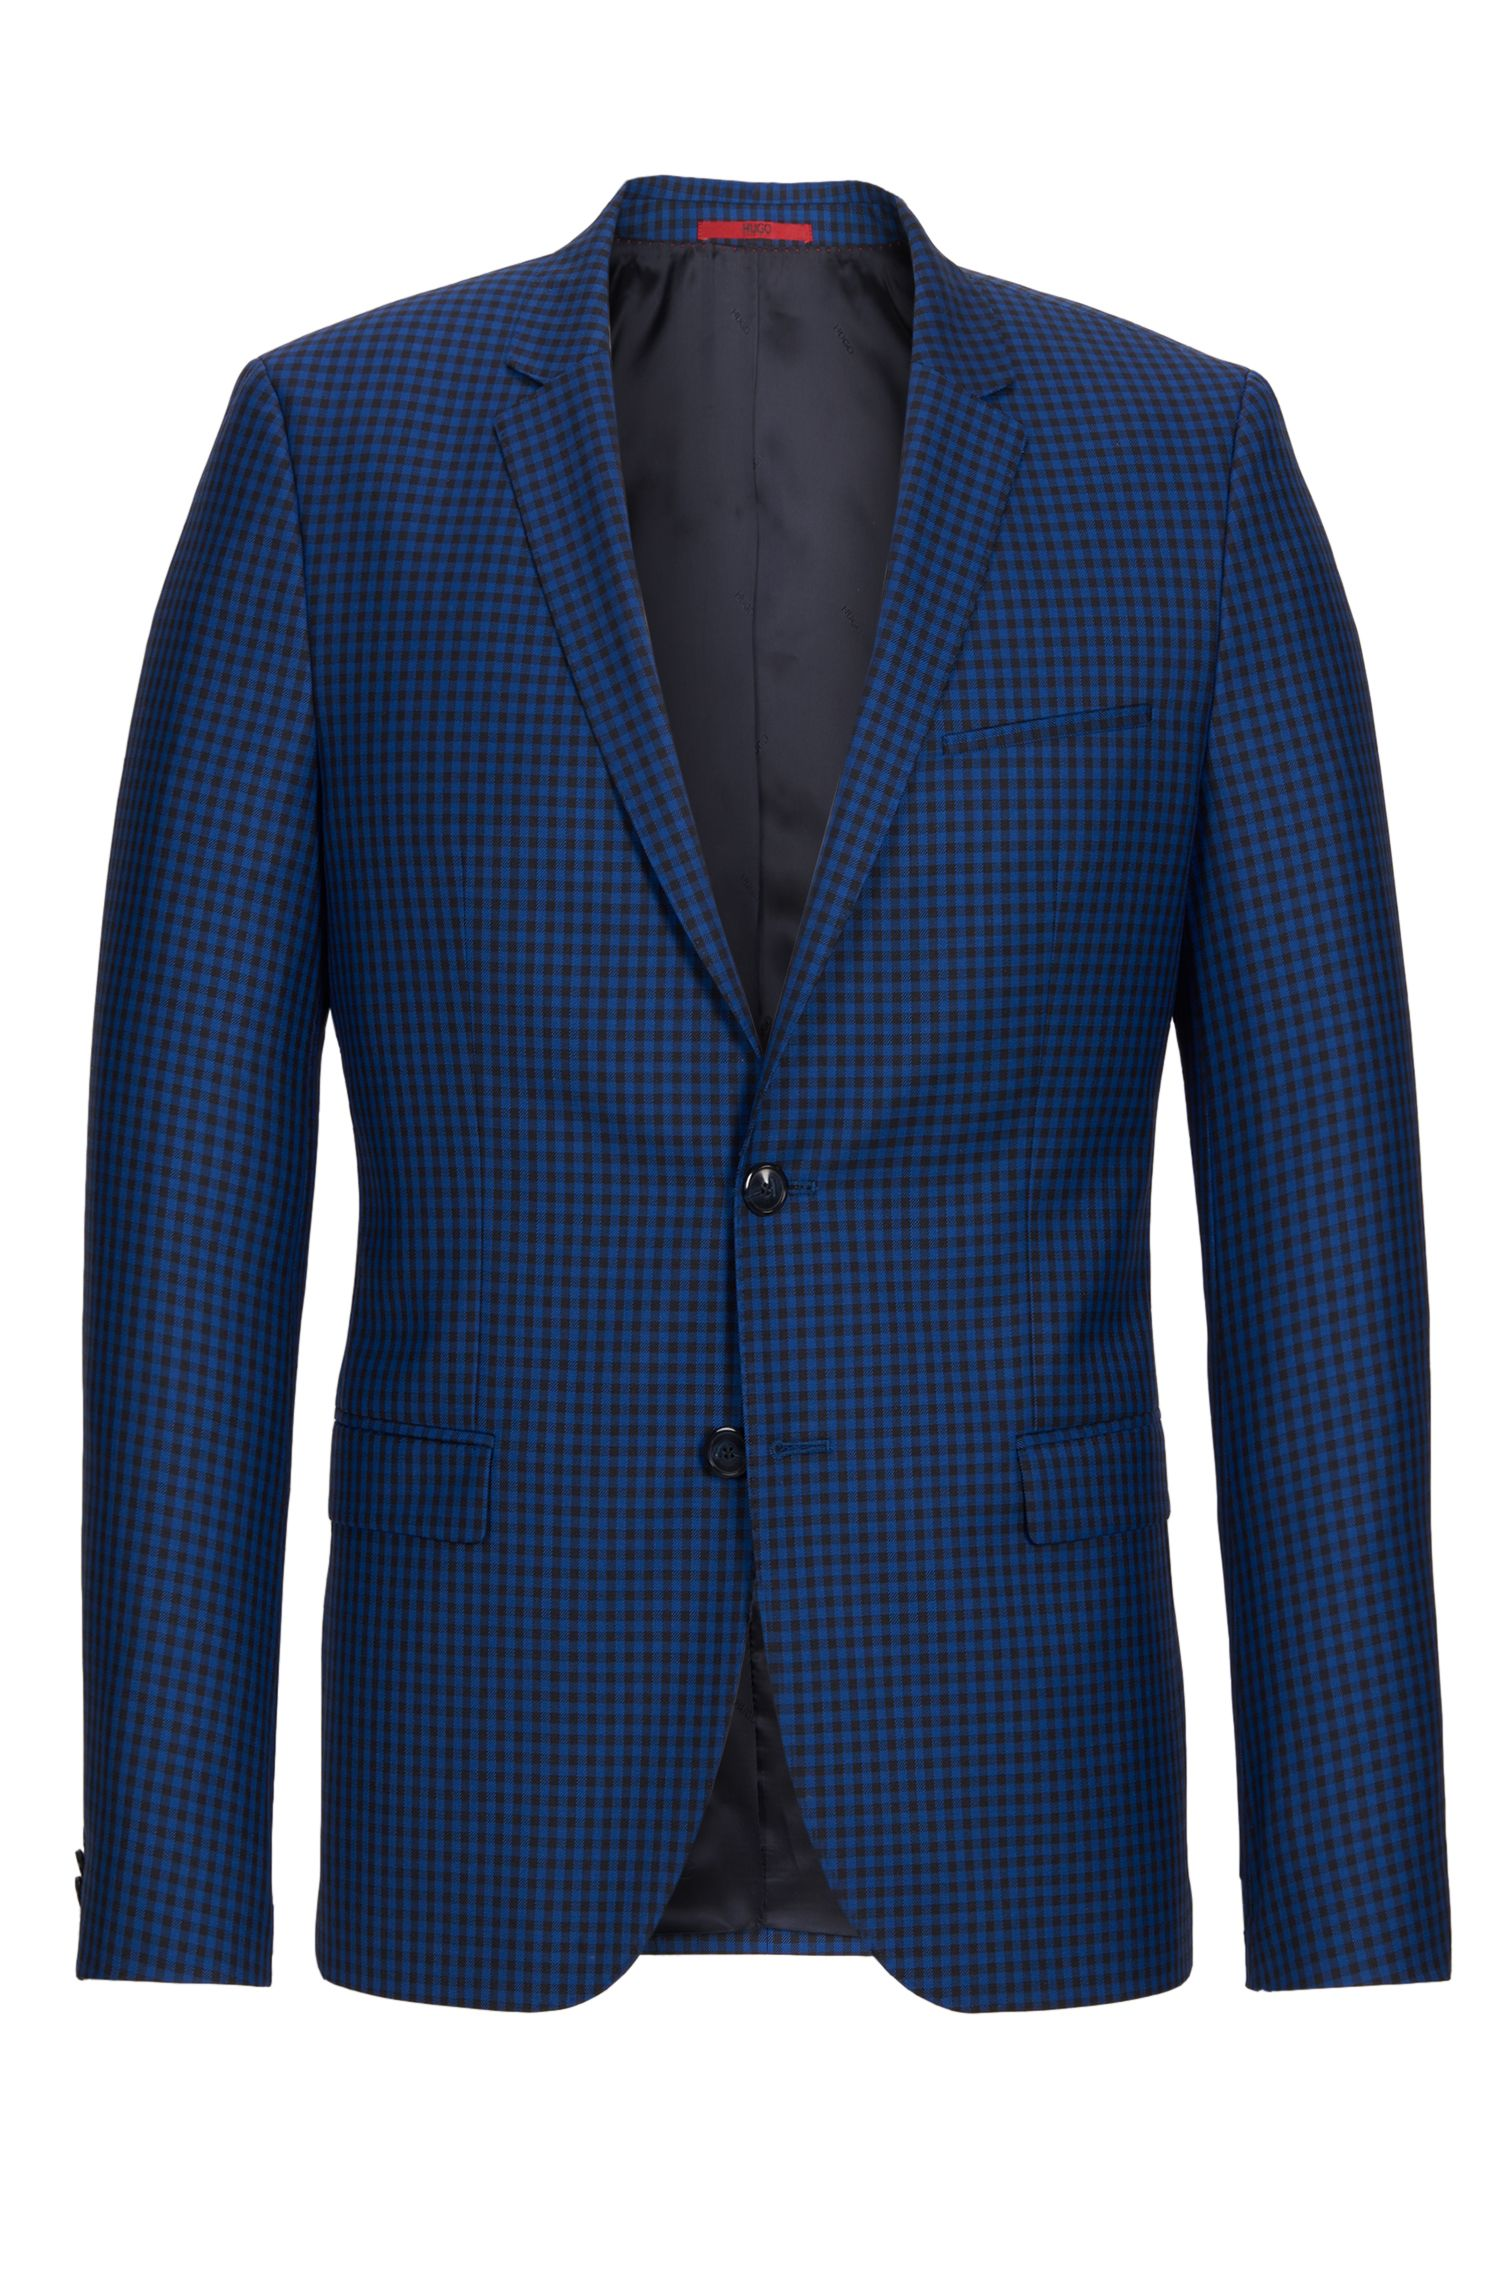 Gingham Virgin Wool Sport Coat, Slim Fit | Arti